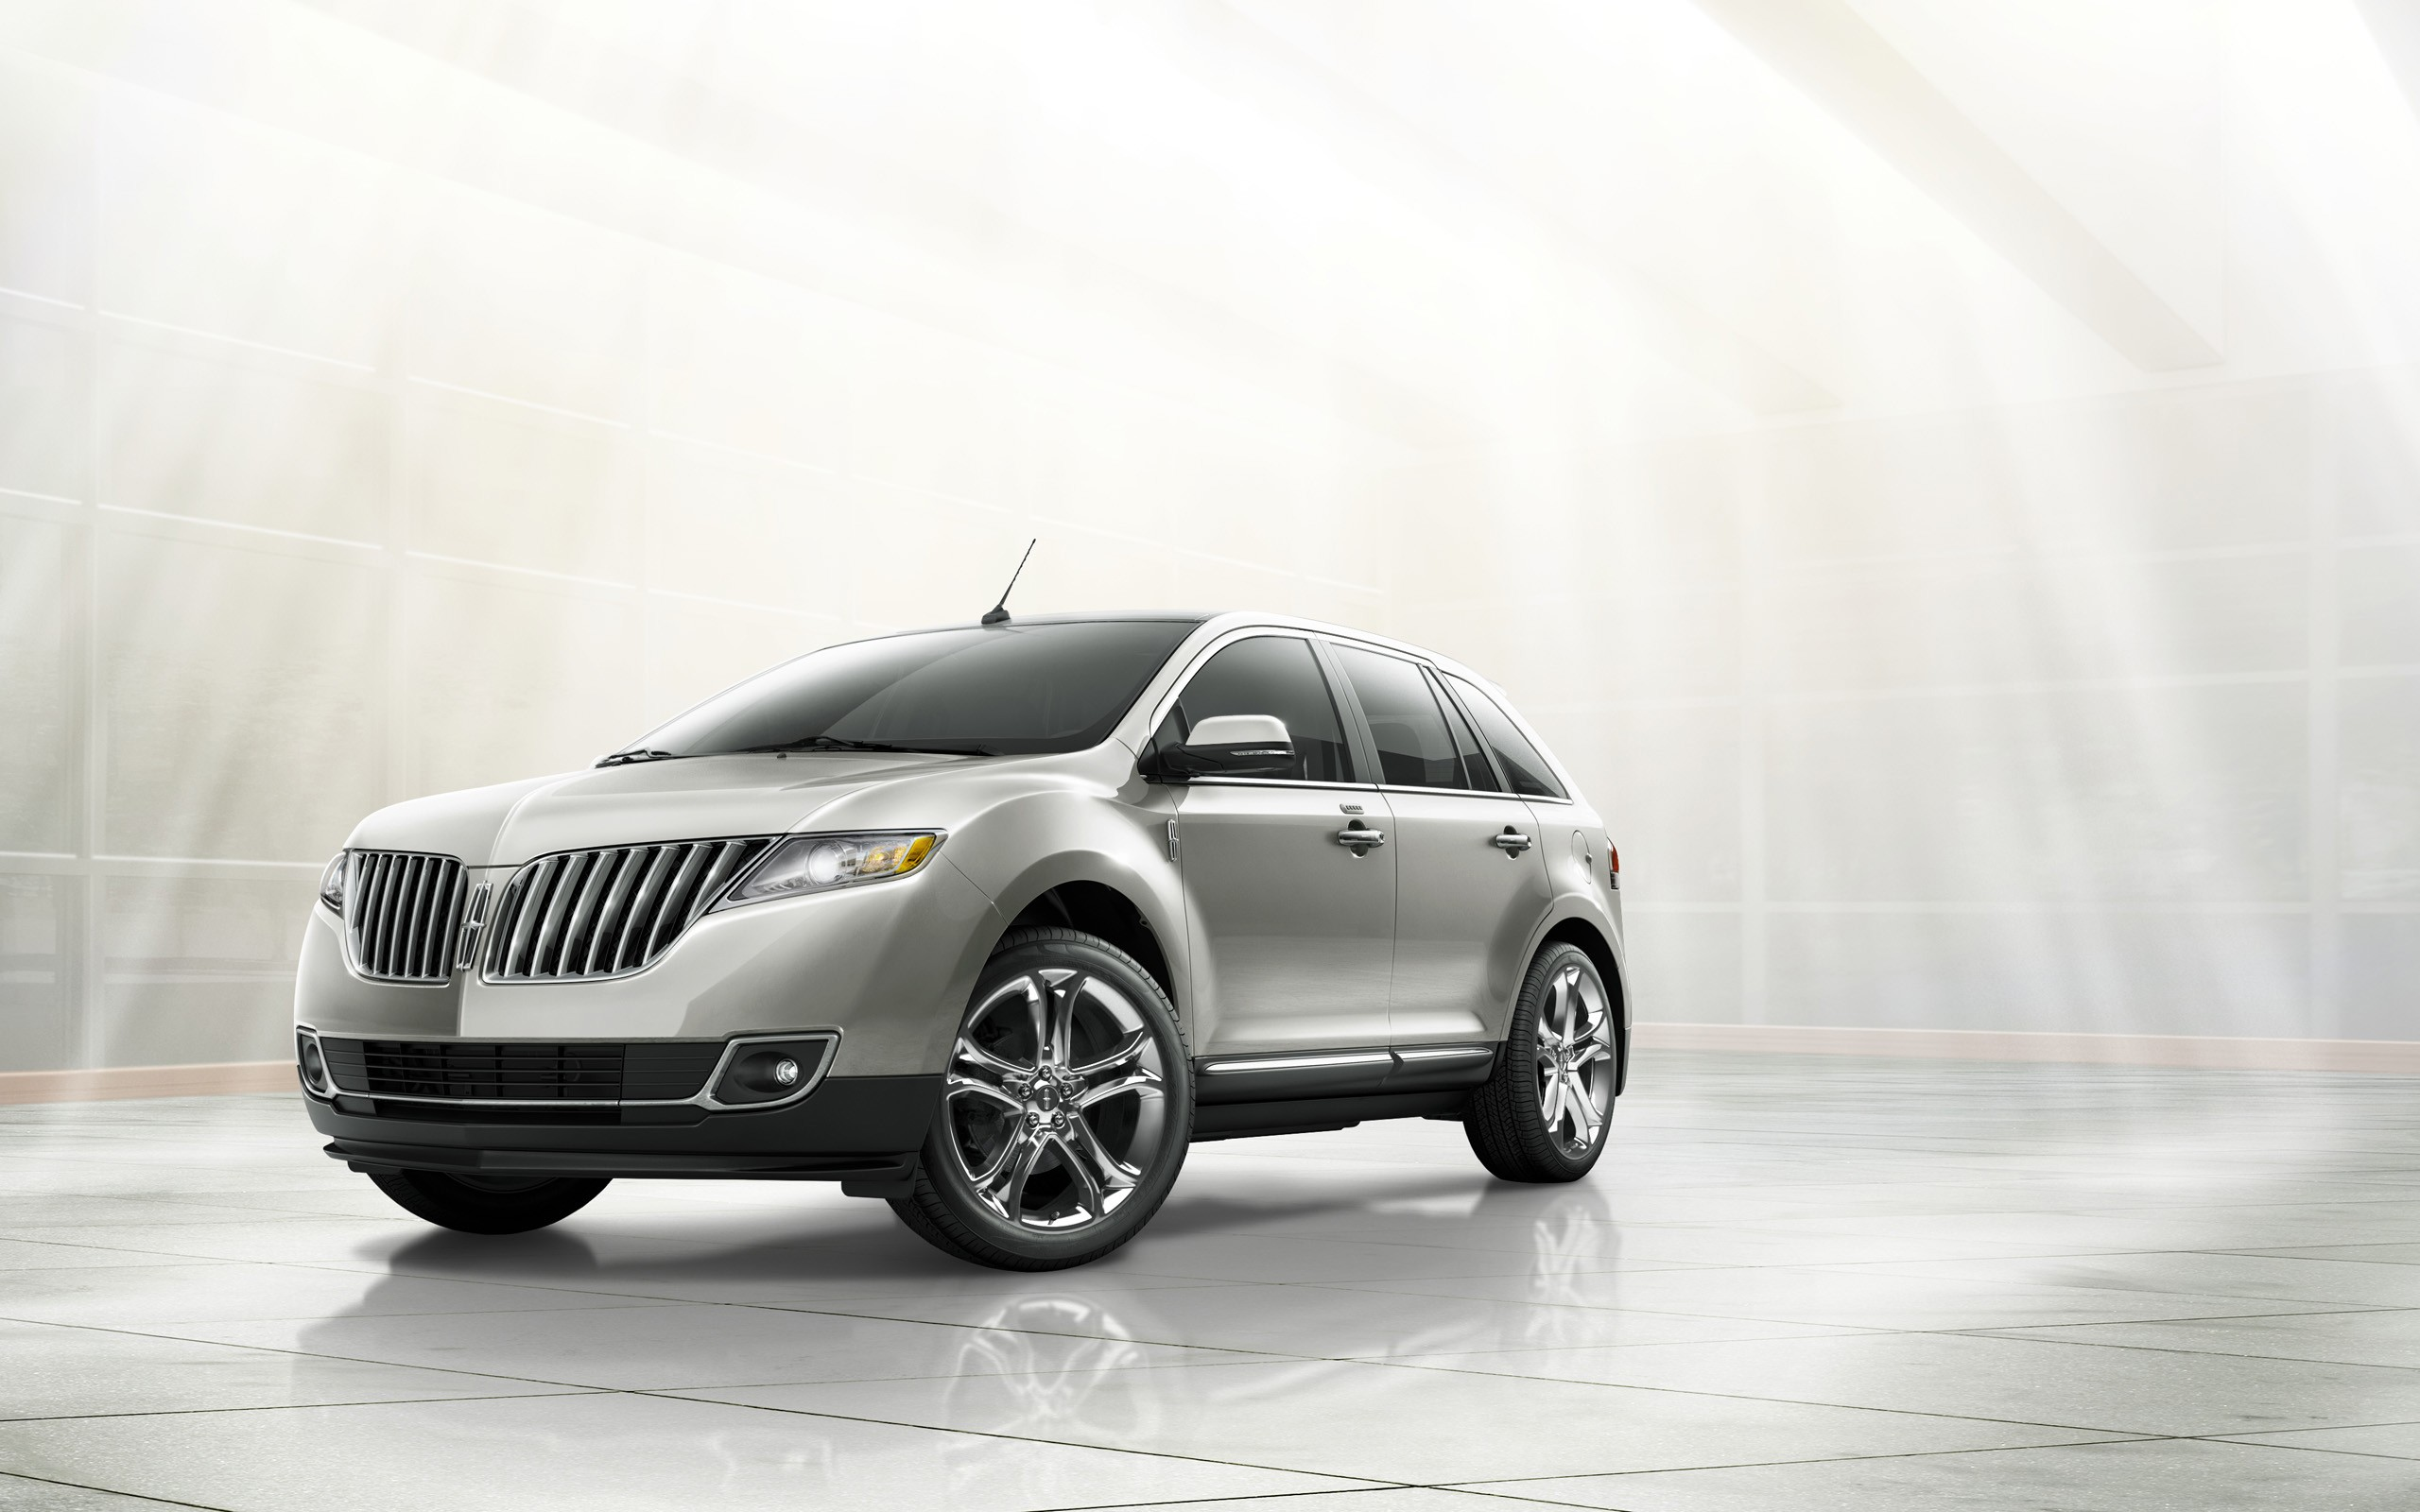 Cars Wallpapers 2014 Hd Download 2014 Lincoln Mkx Wallpaper Hd Car Wallpapers Id 4368